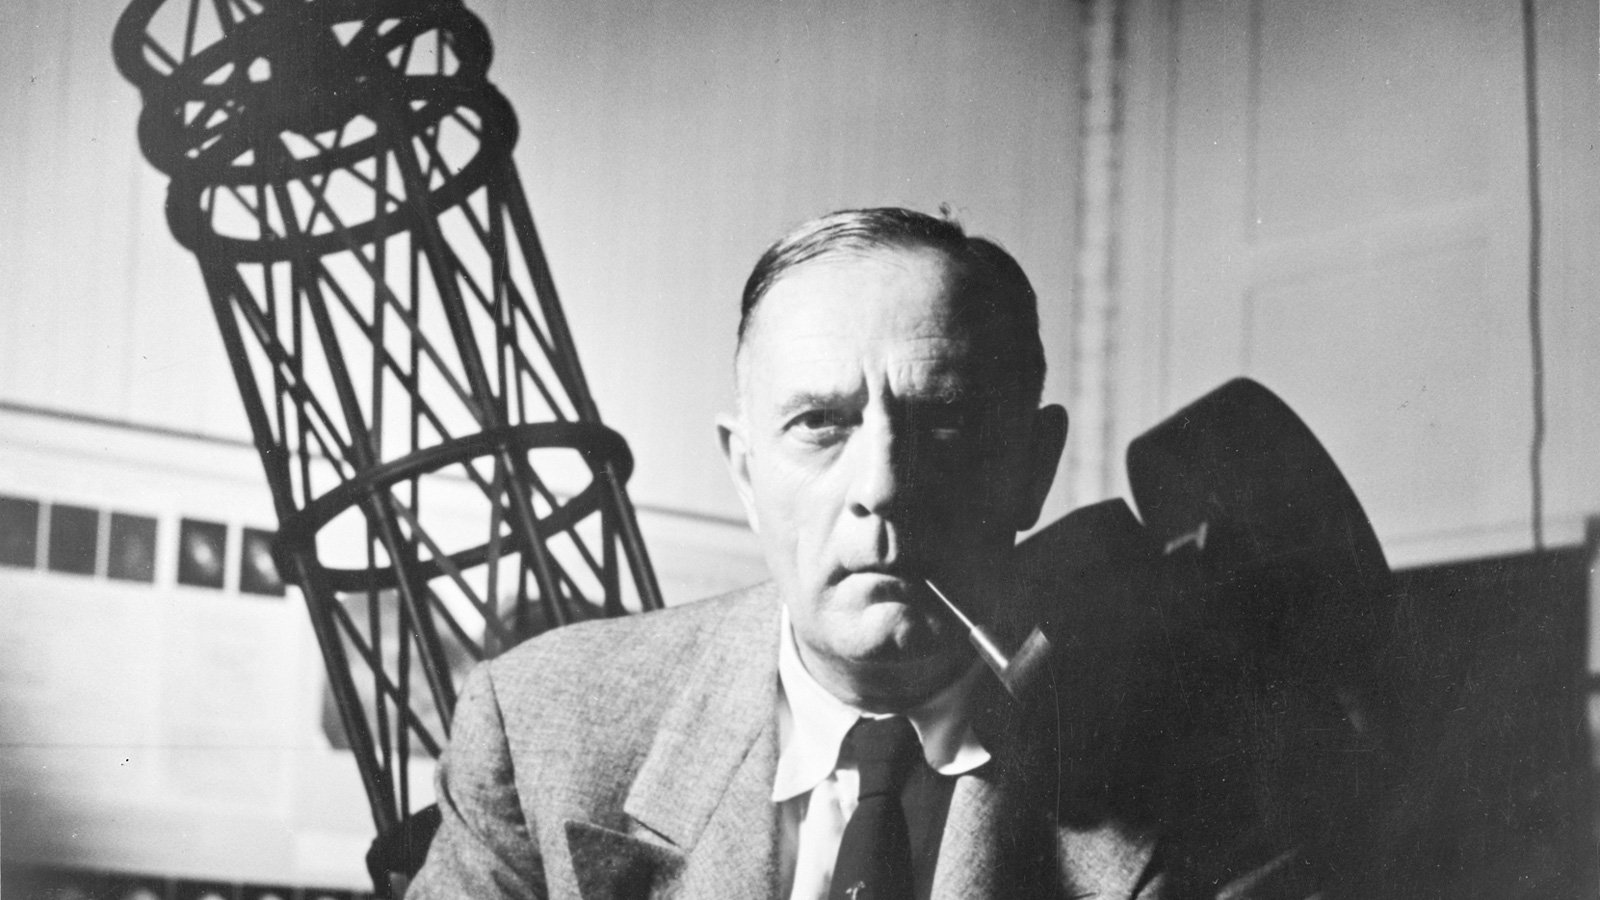 Edwin Hubble. Credit: Image courtesy of the Observatories of the Carnegie Institution for Science Collection at the Huntington Library